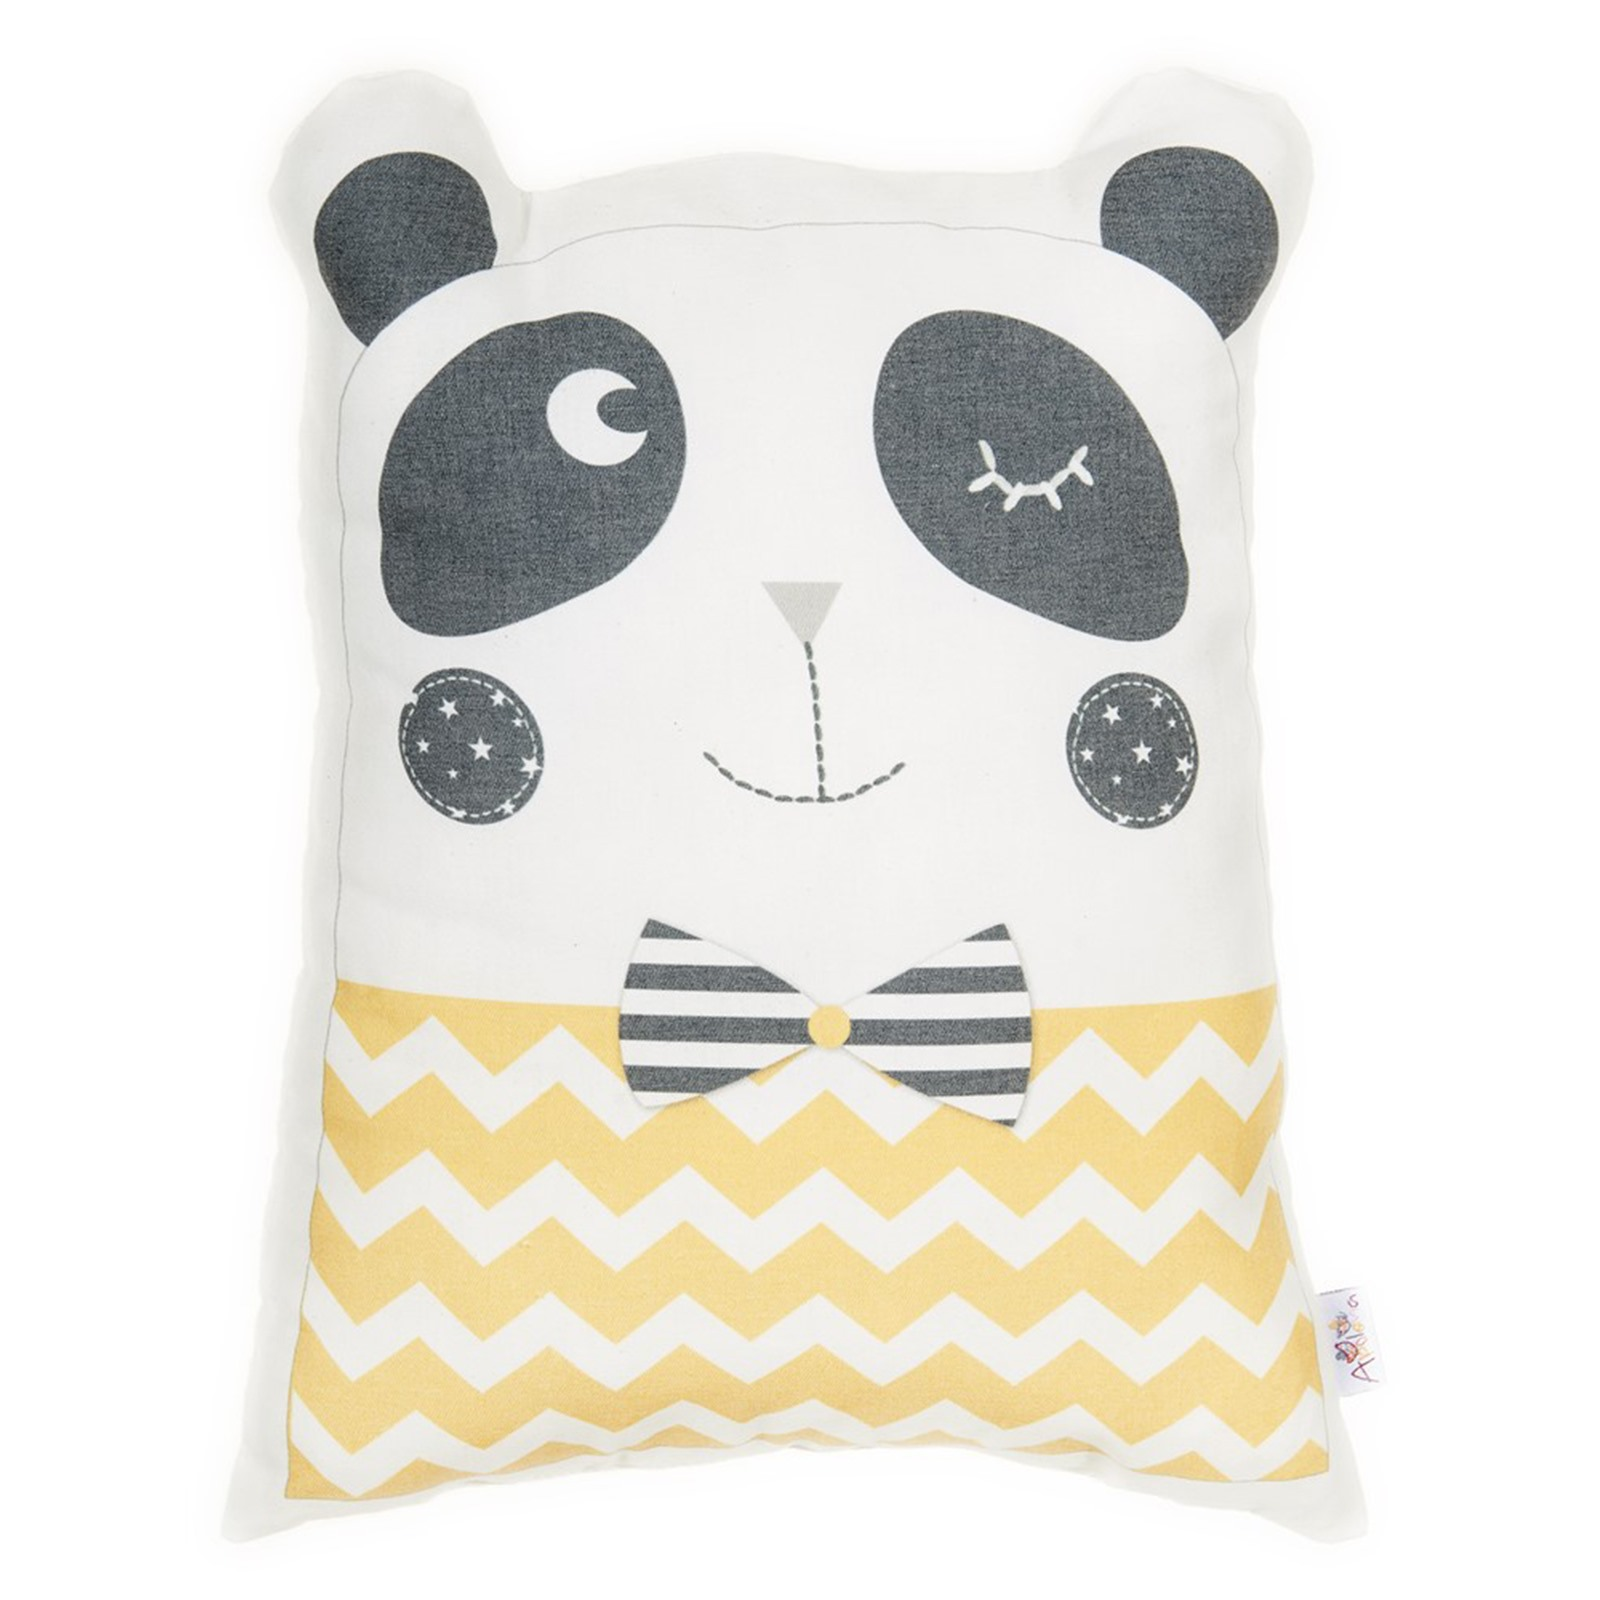 Ebebek Apolena Baby Panda Pillow Cute  Yellow Striped Printed For Baby Boys And Girls 33x28x10 Cm Approx